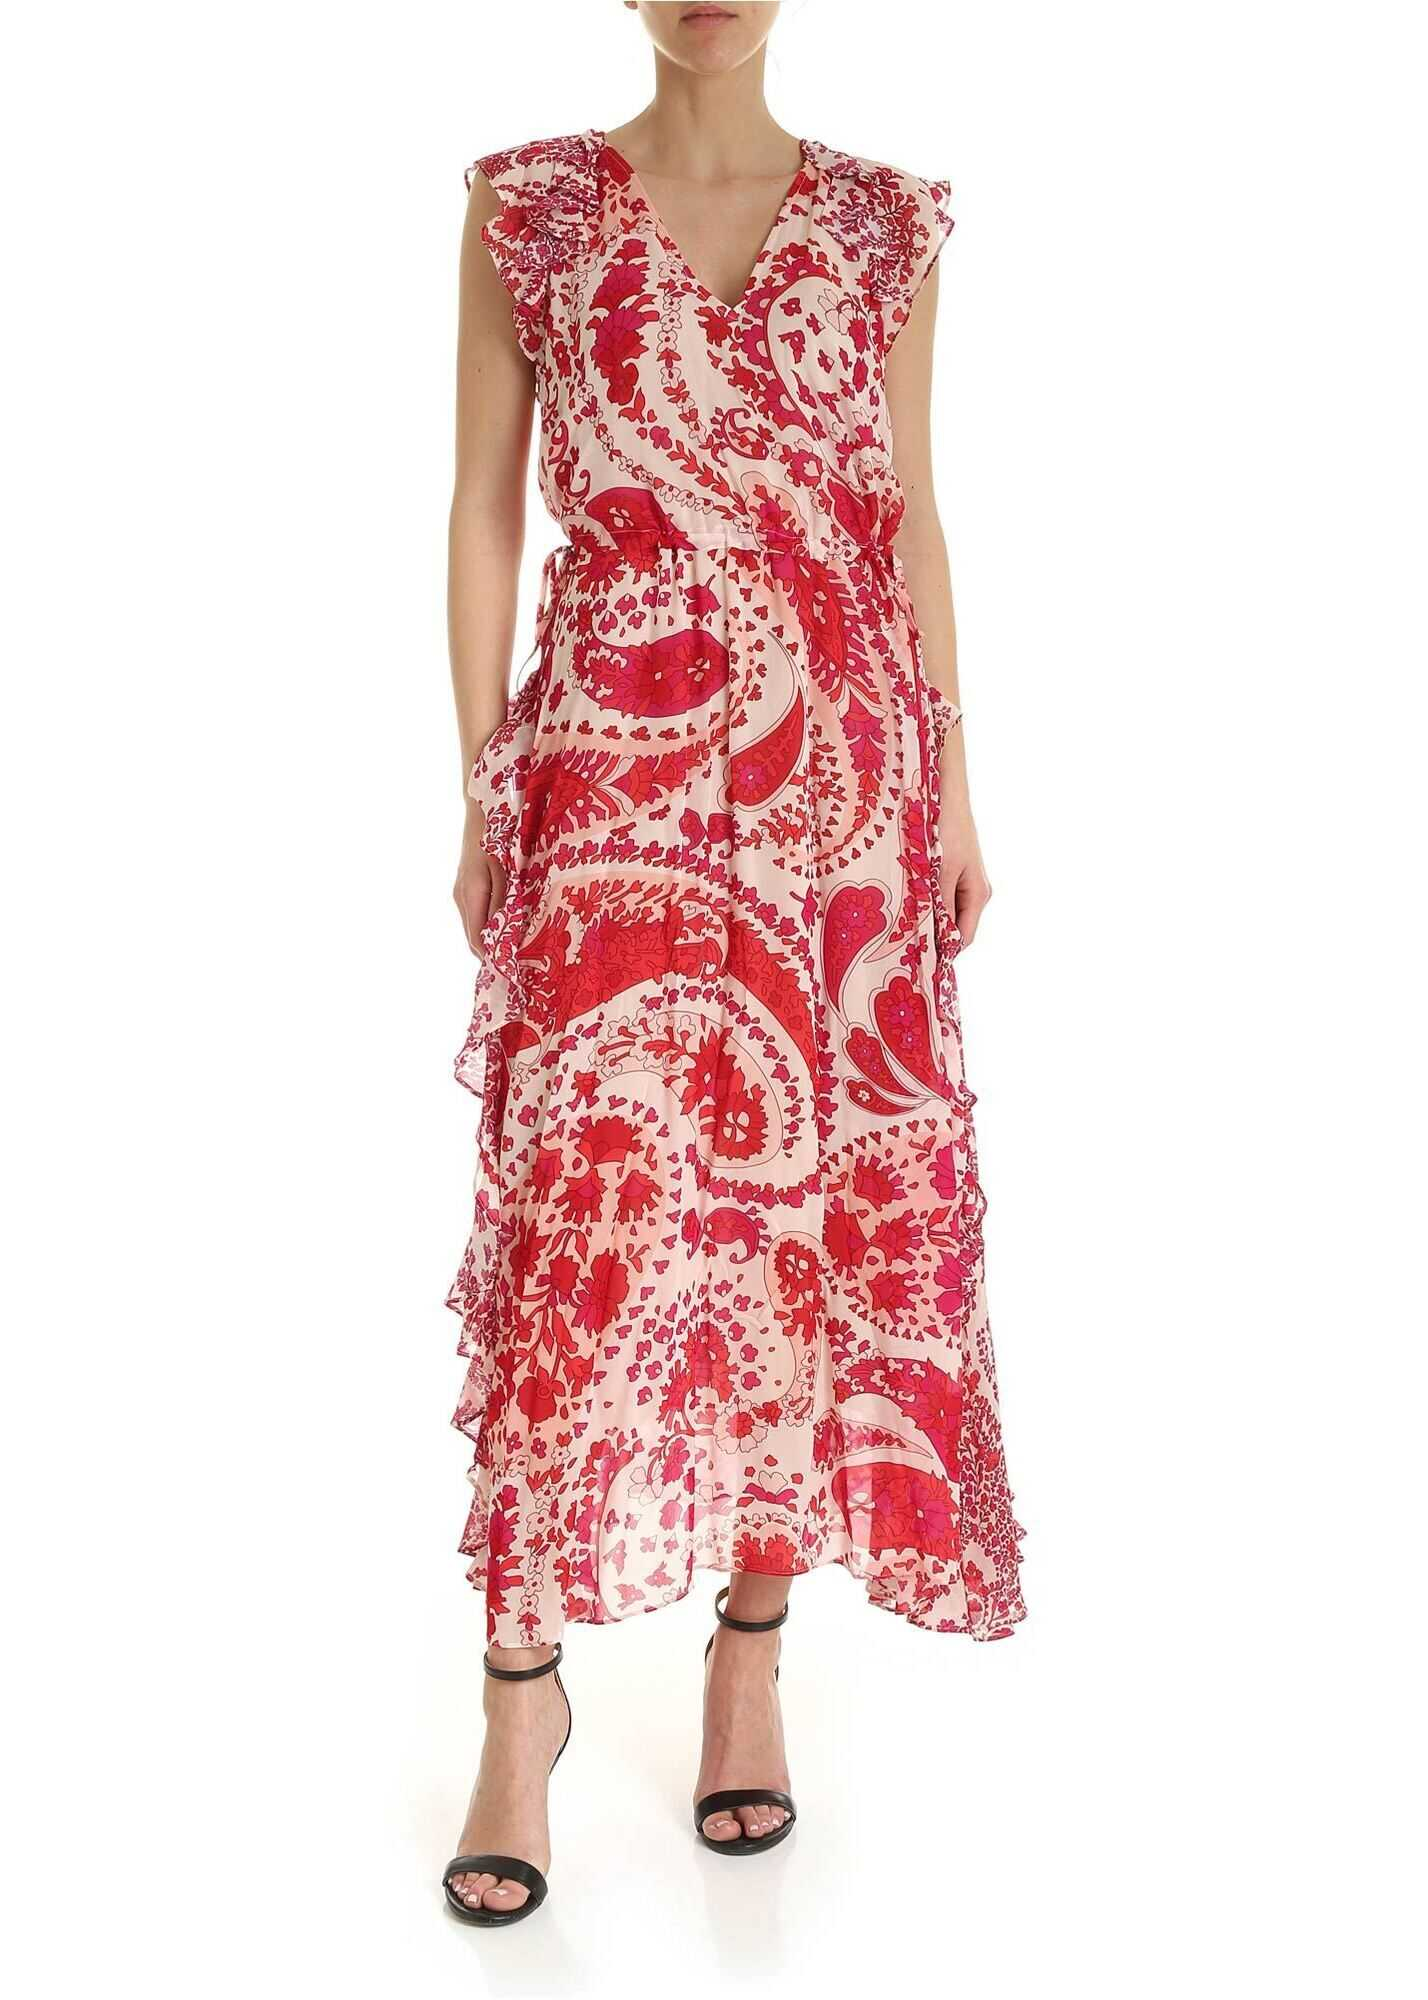 Twin-set Simona Barbieri Floral Print Viscose Dress In Red Color Red